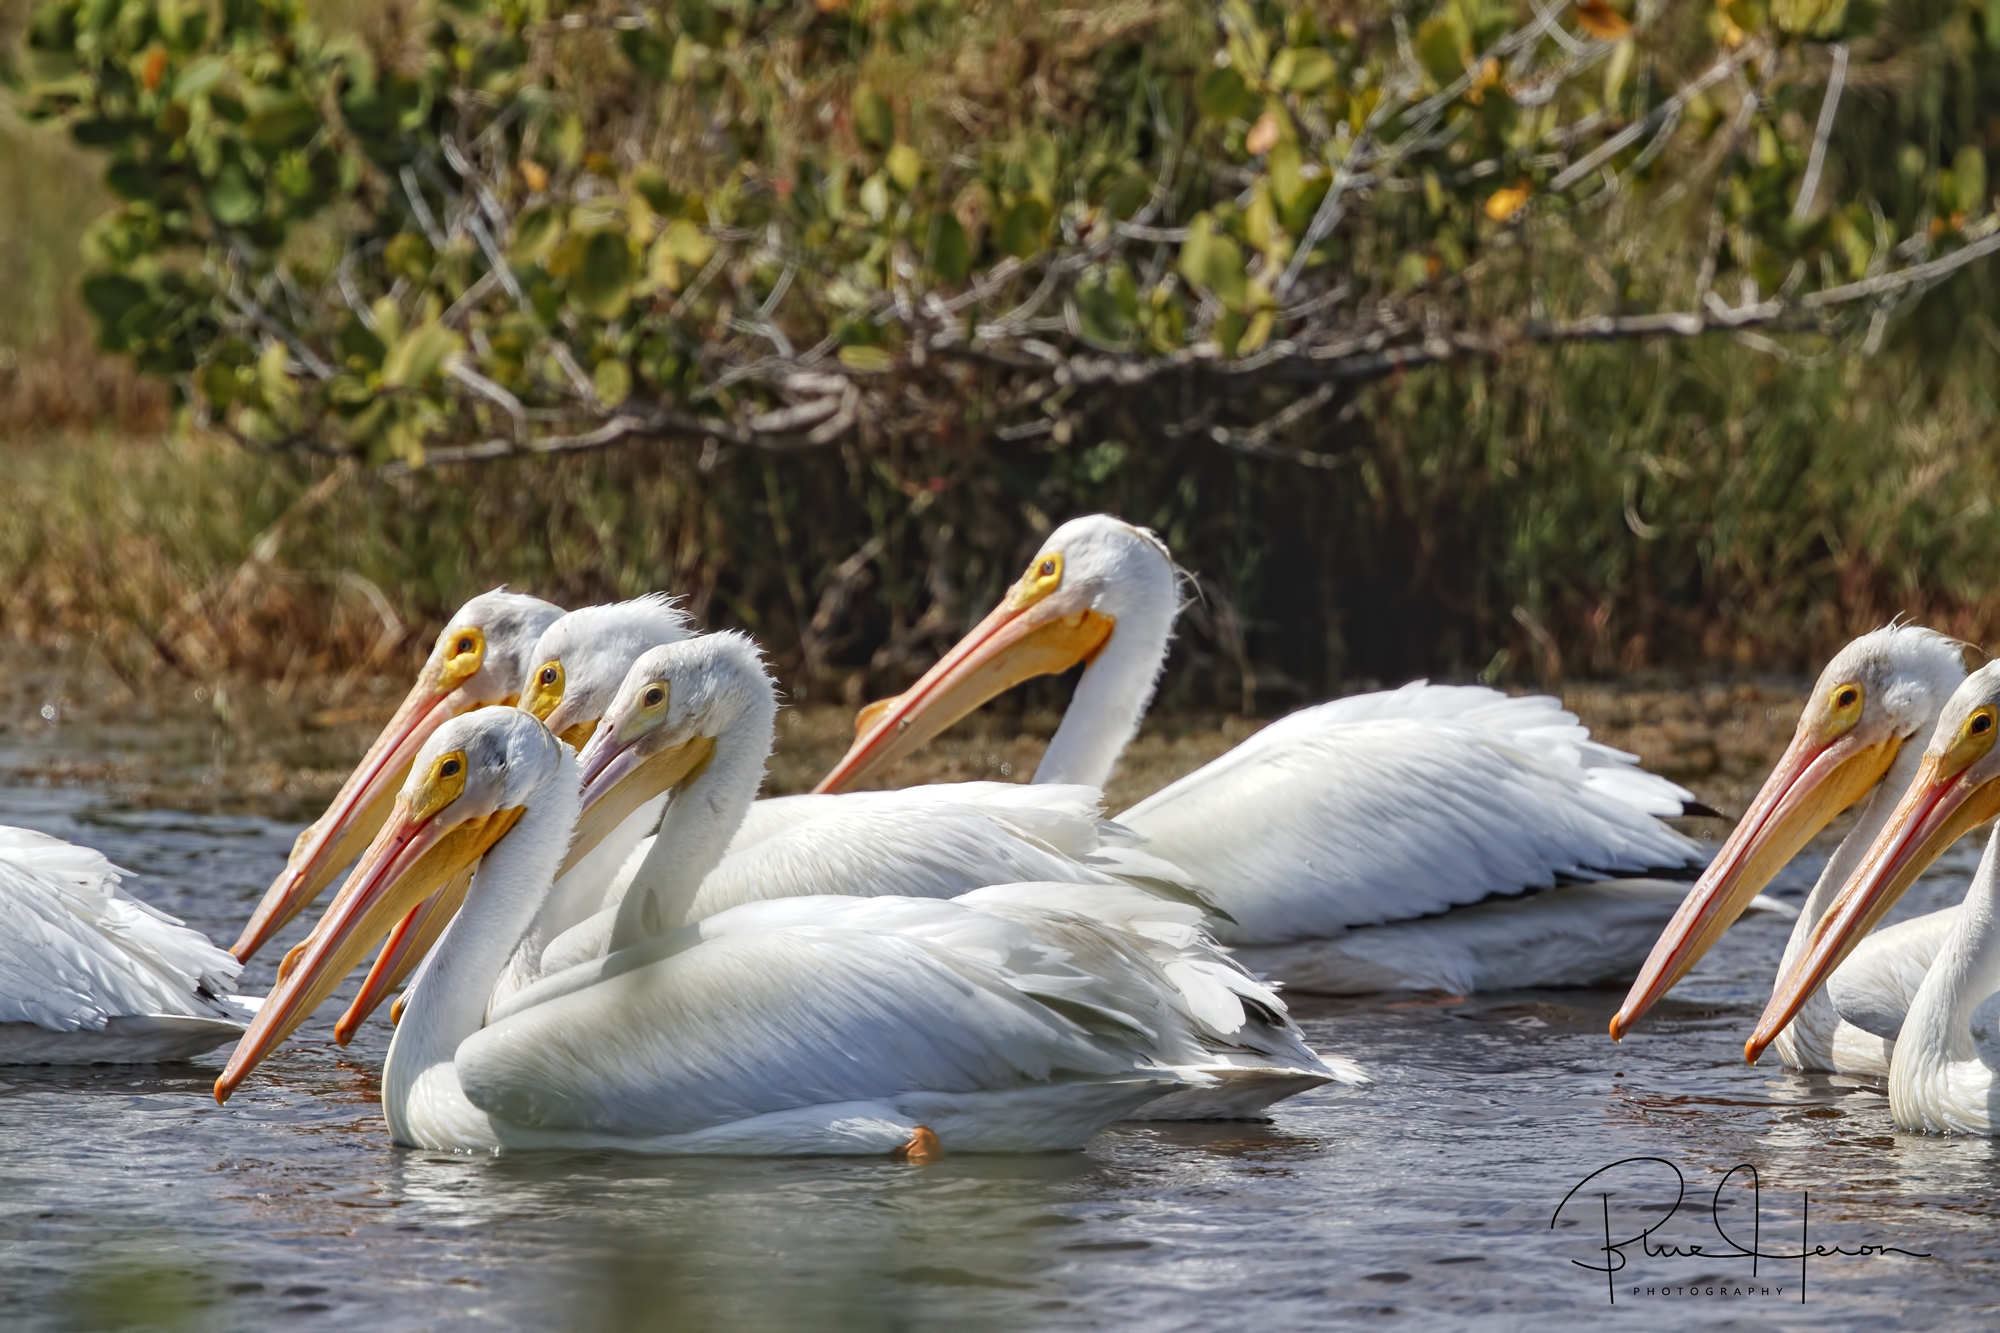 A Pod of White Pelicans cruising by